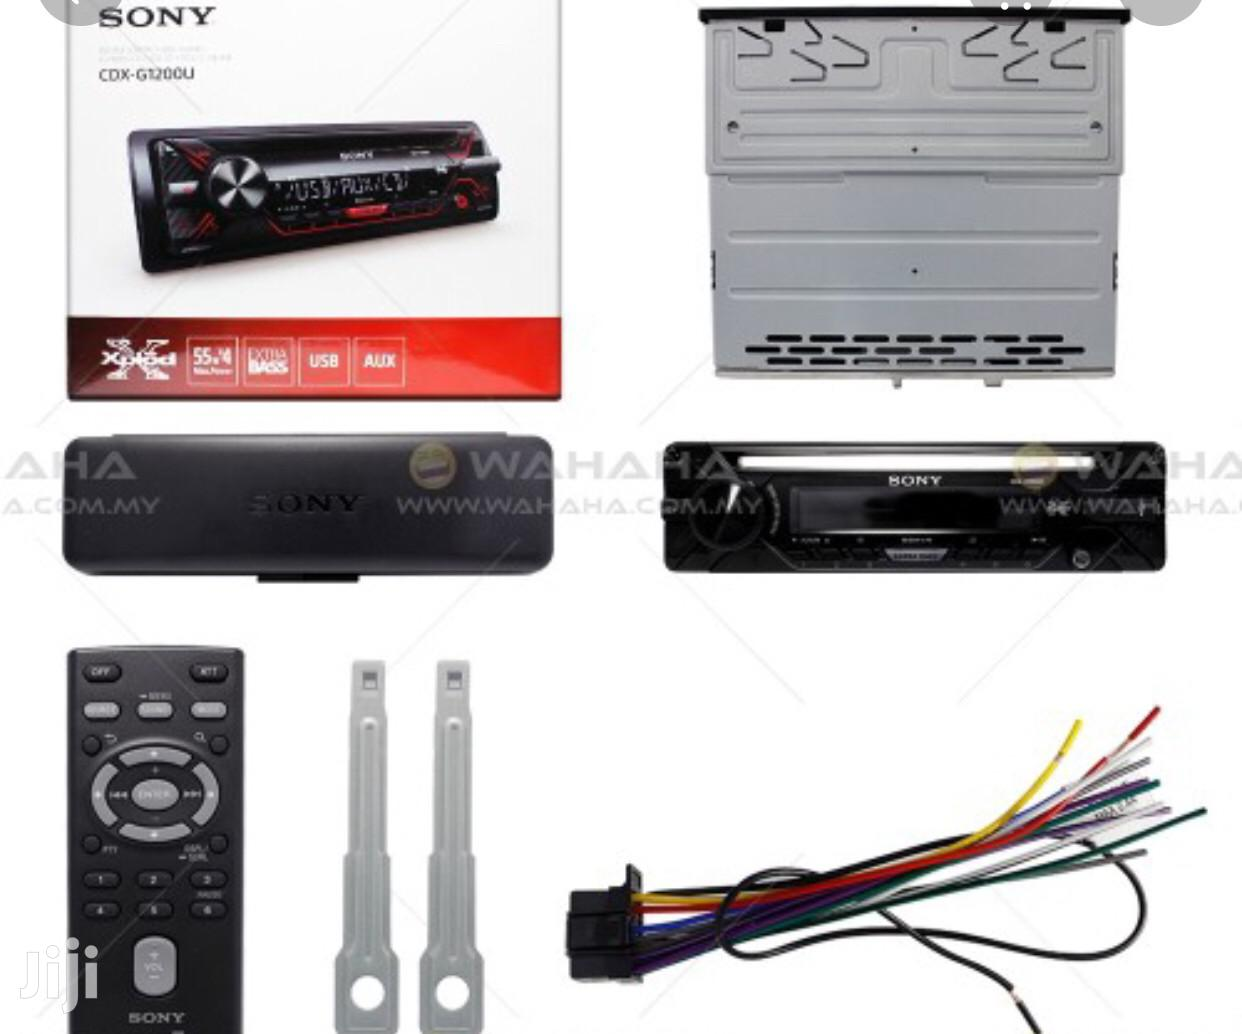 SONY Cdx-g1200u Cd USB Aux In Car Radio Stereo Player